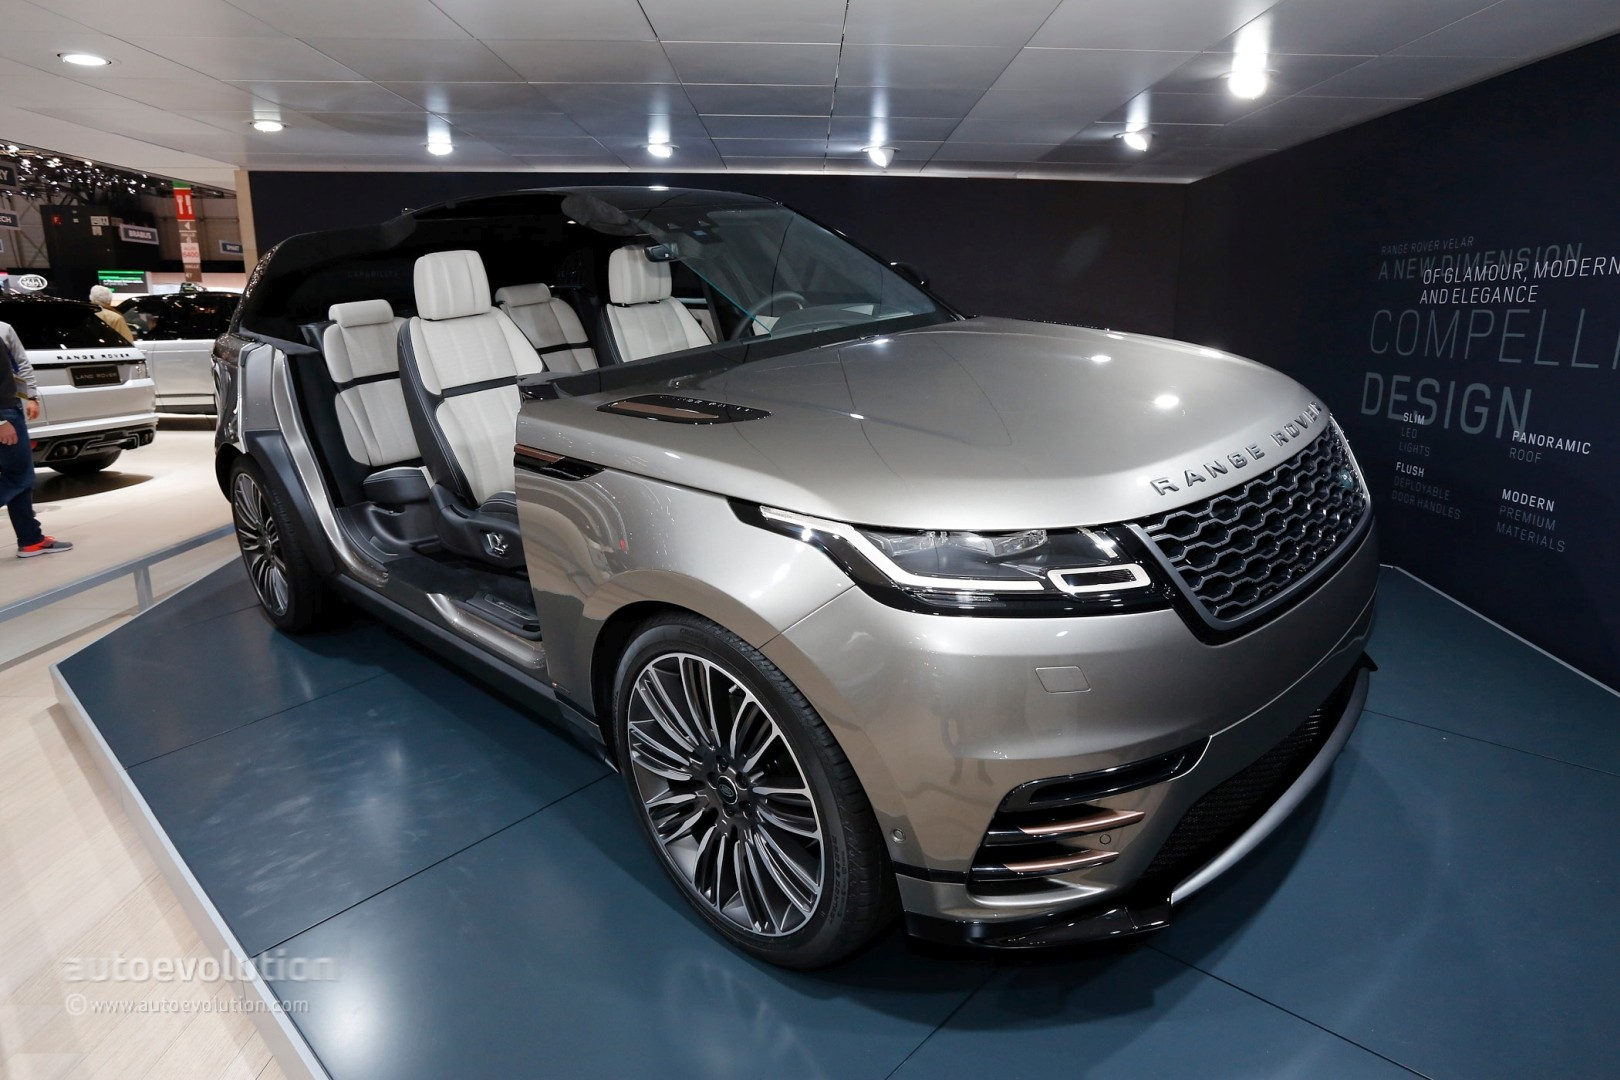 Range Rover Sport Supercharged >> Range Rover Velar Convertible Rendering Looks Like a Luxury Boat - autoevolution